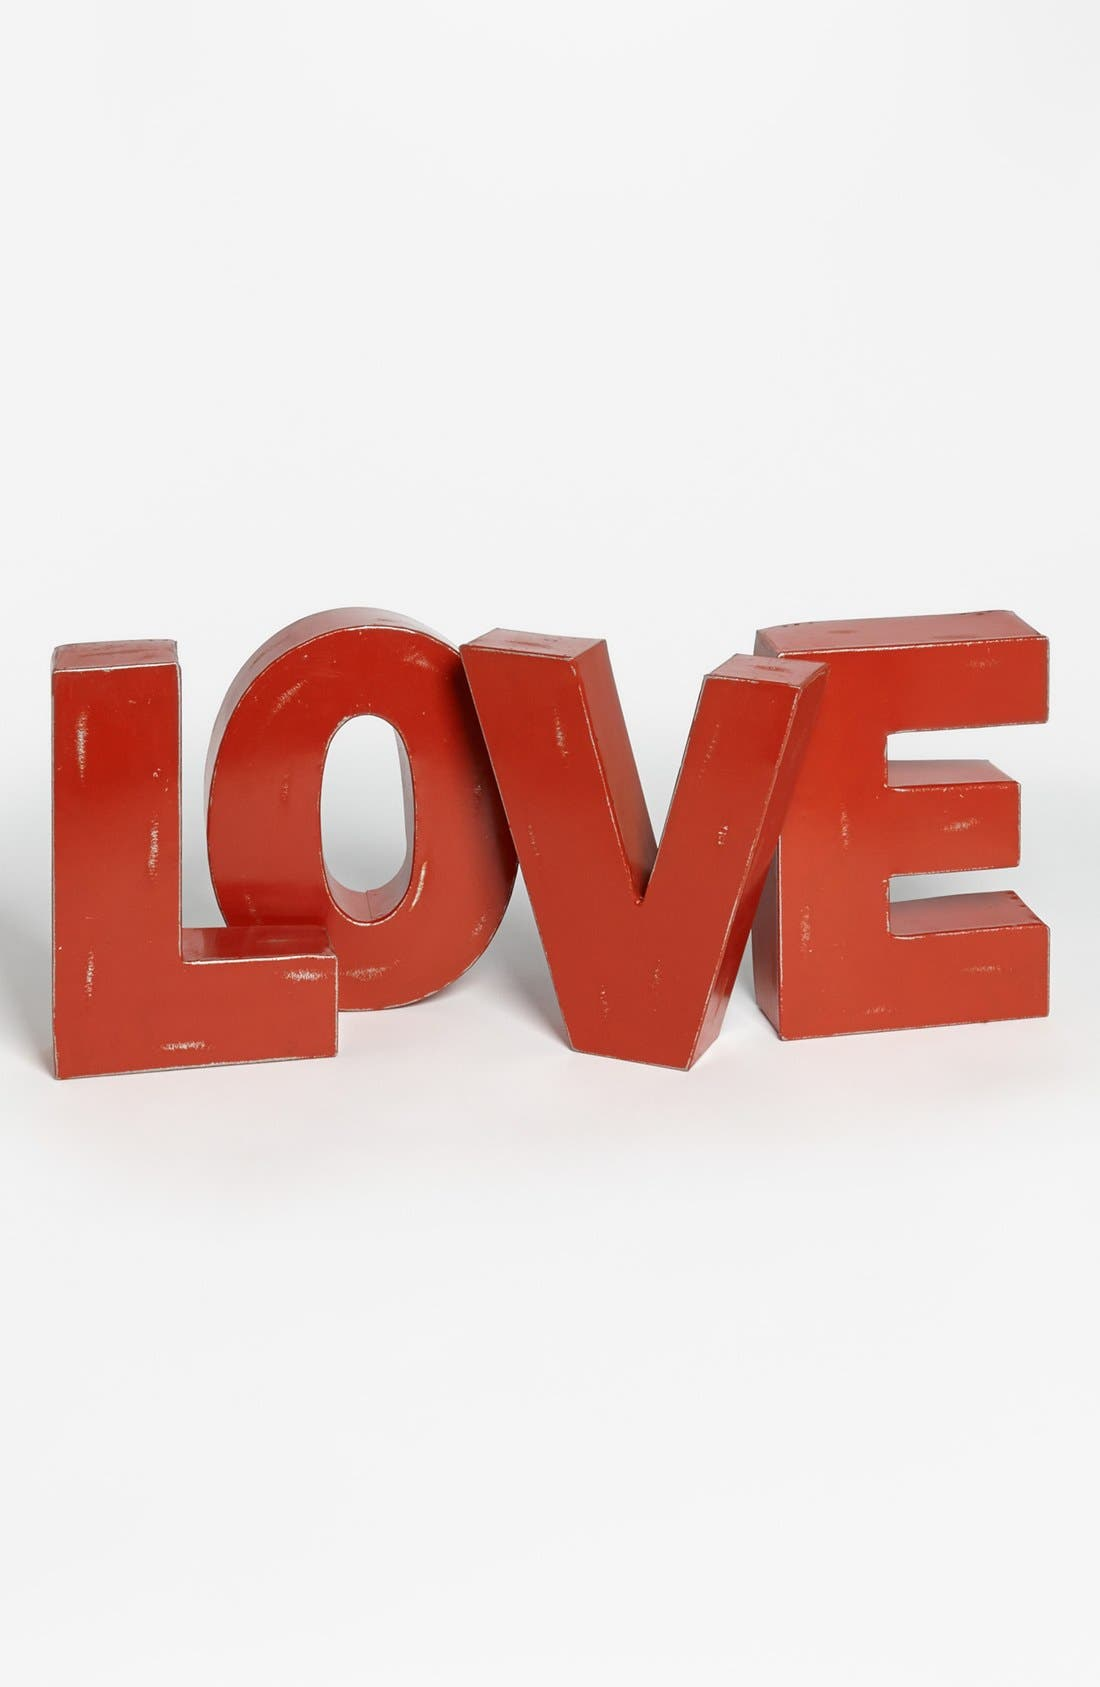 Main Image - Foreside 'Love' Decorative Metal Letters